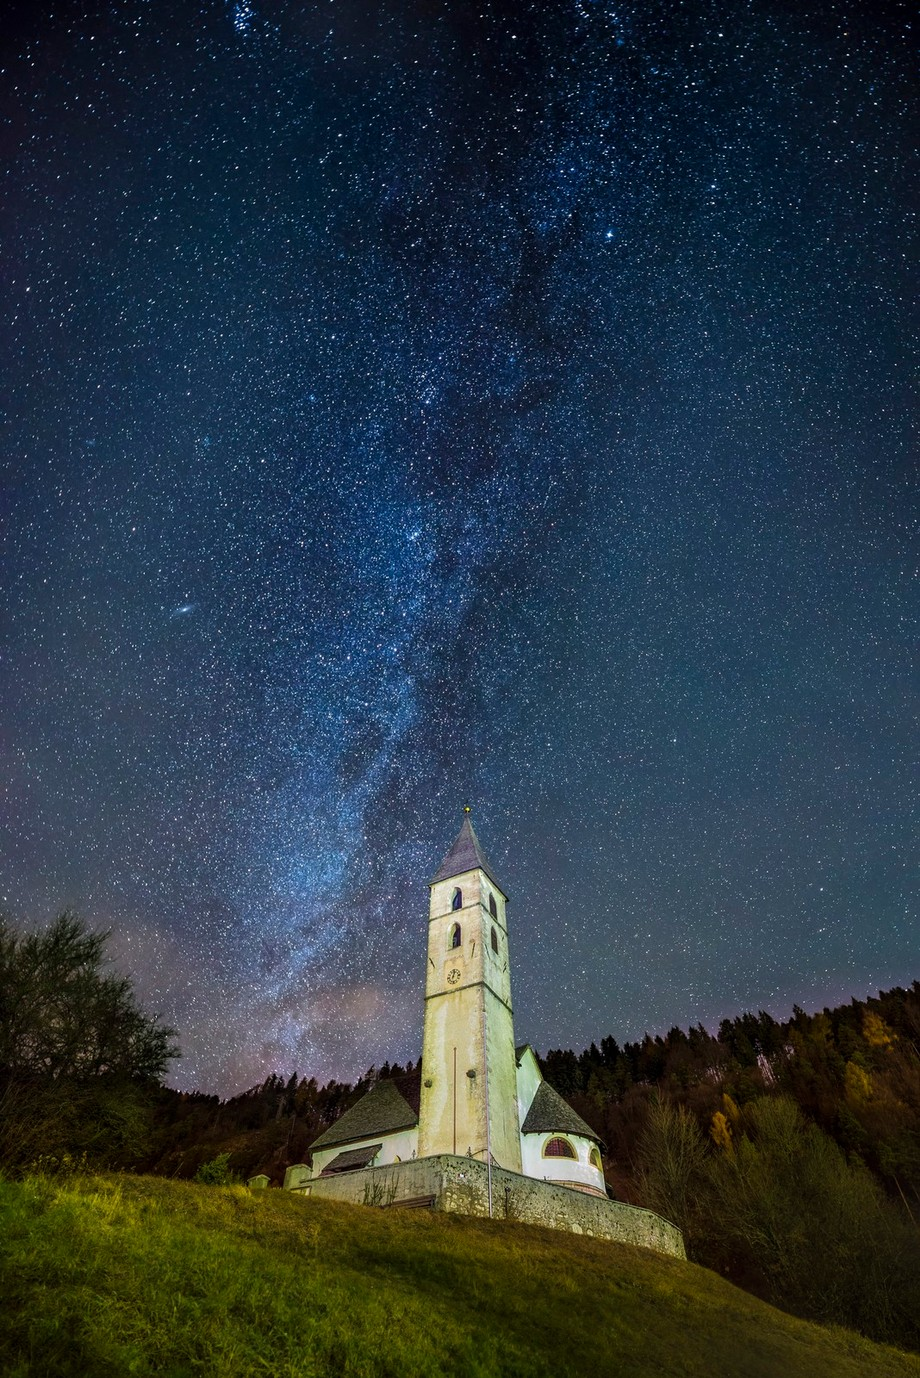 0:05 o' clock by spidi1981 - Capture The Milky Way Photo Contest